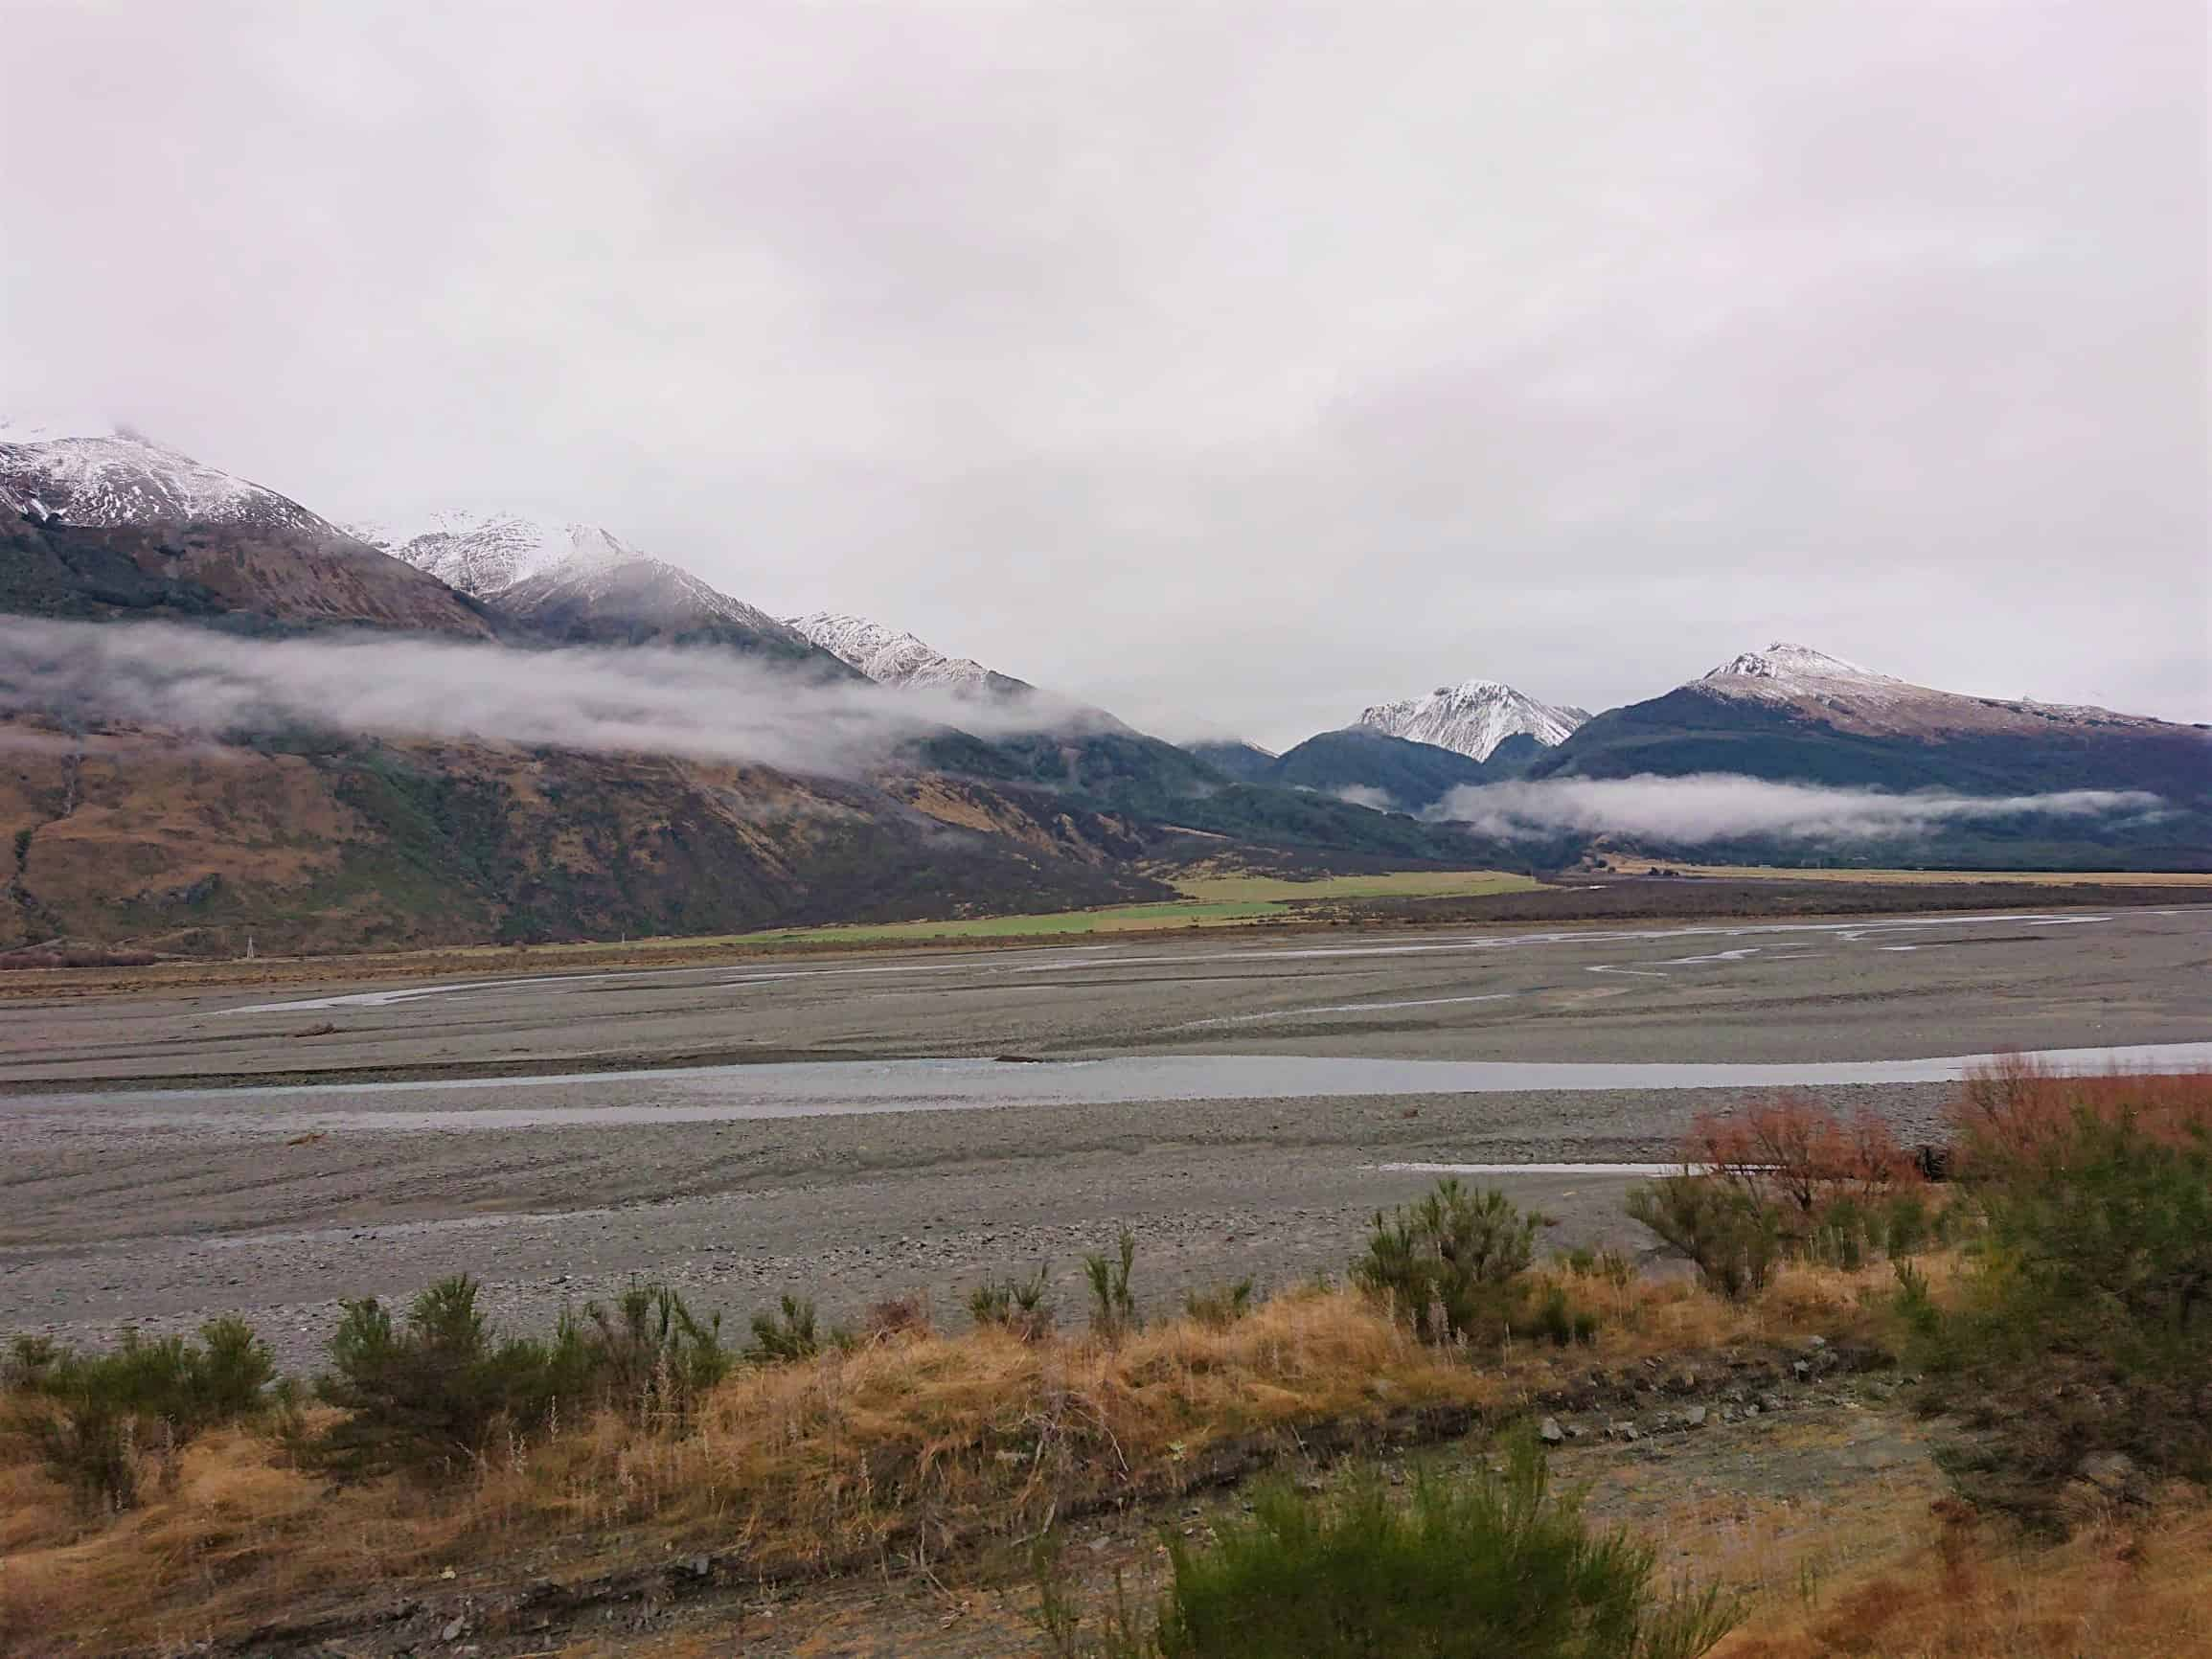 River flats and snow-covered mountains on the way to Greymouth.